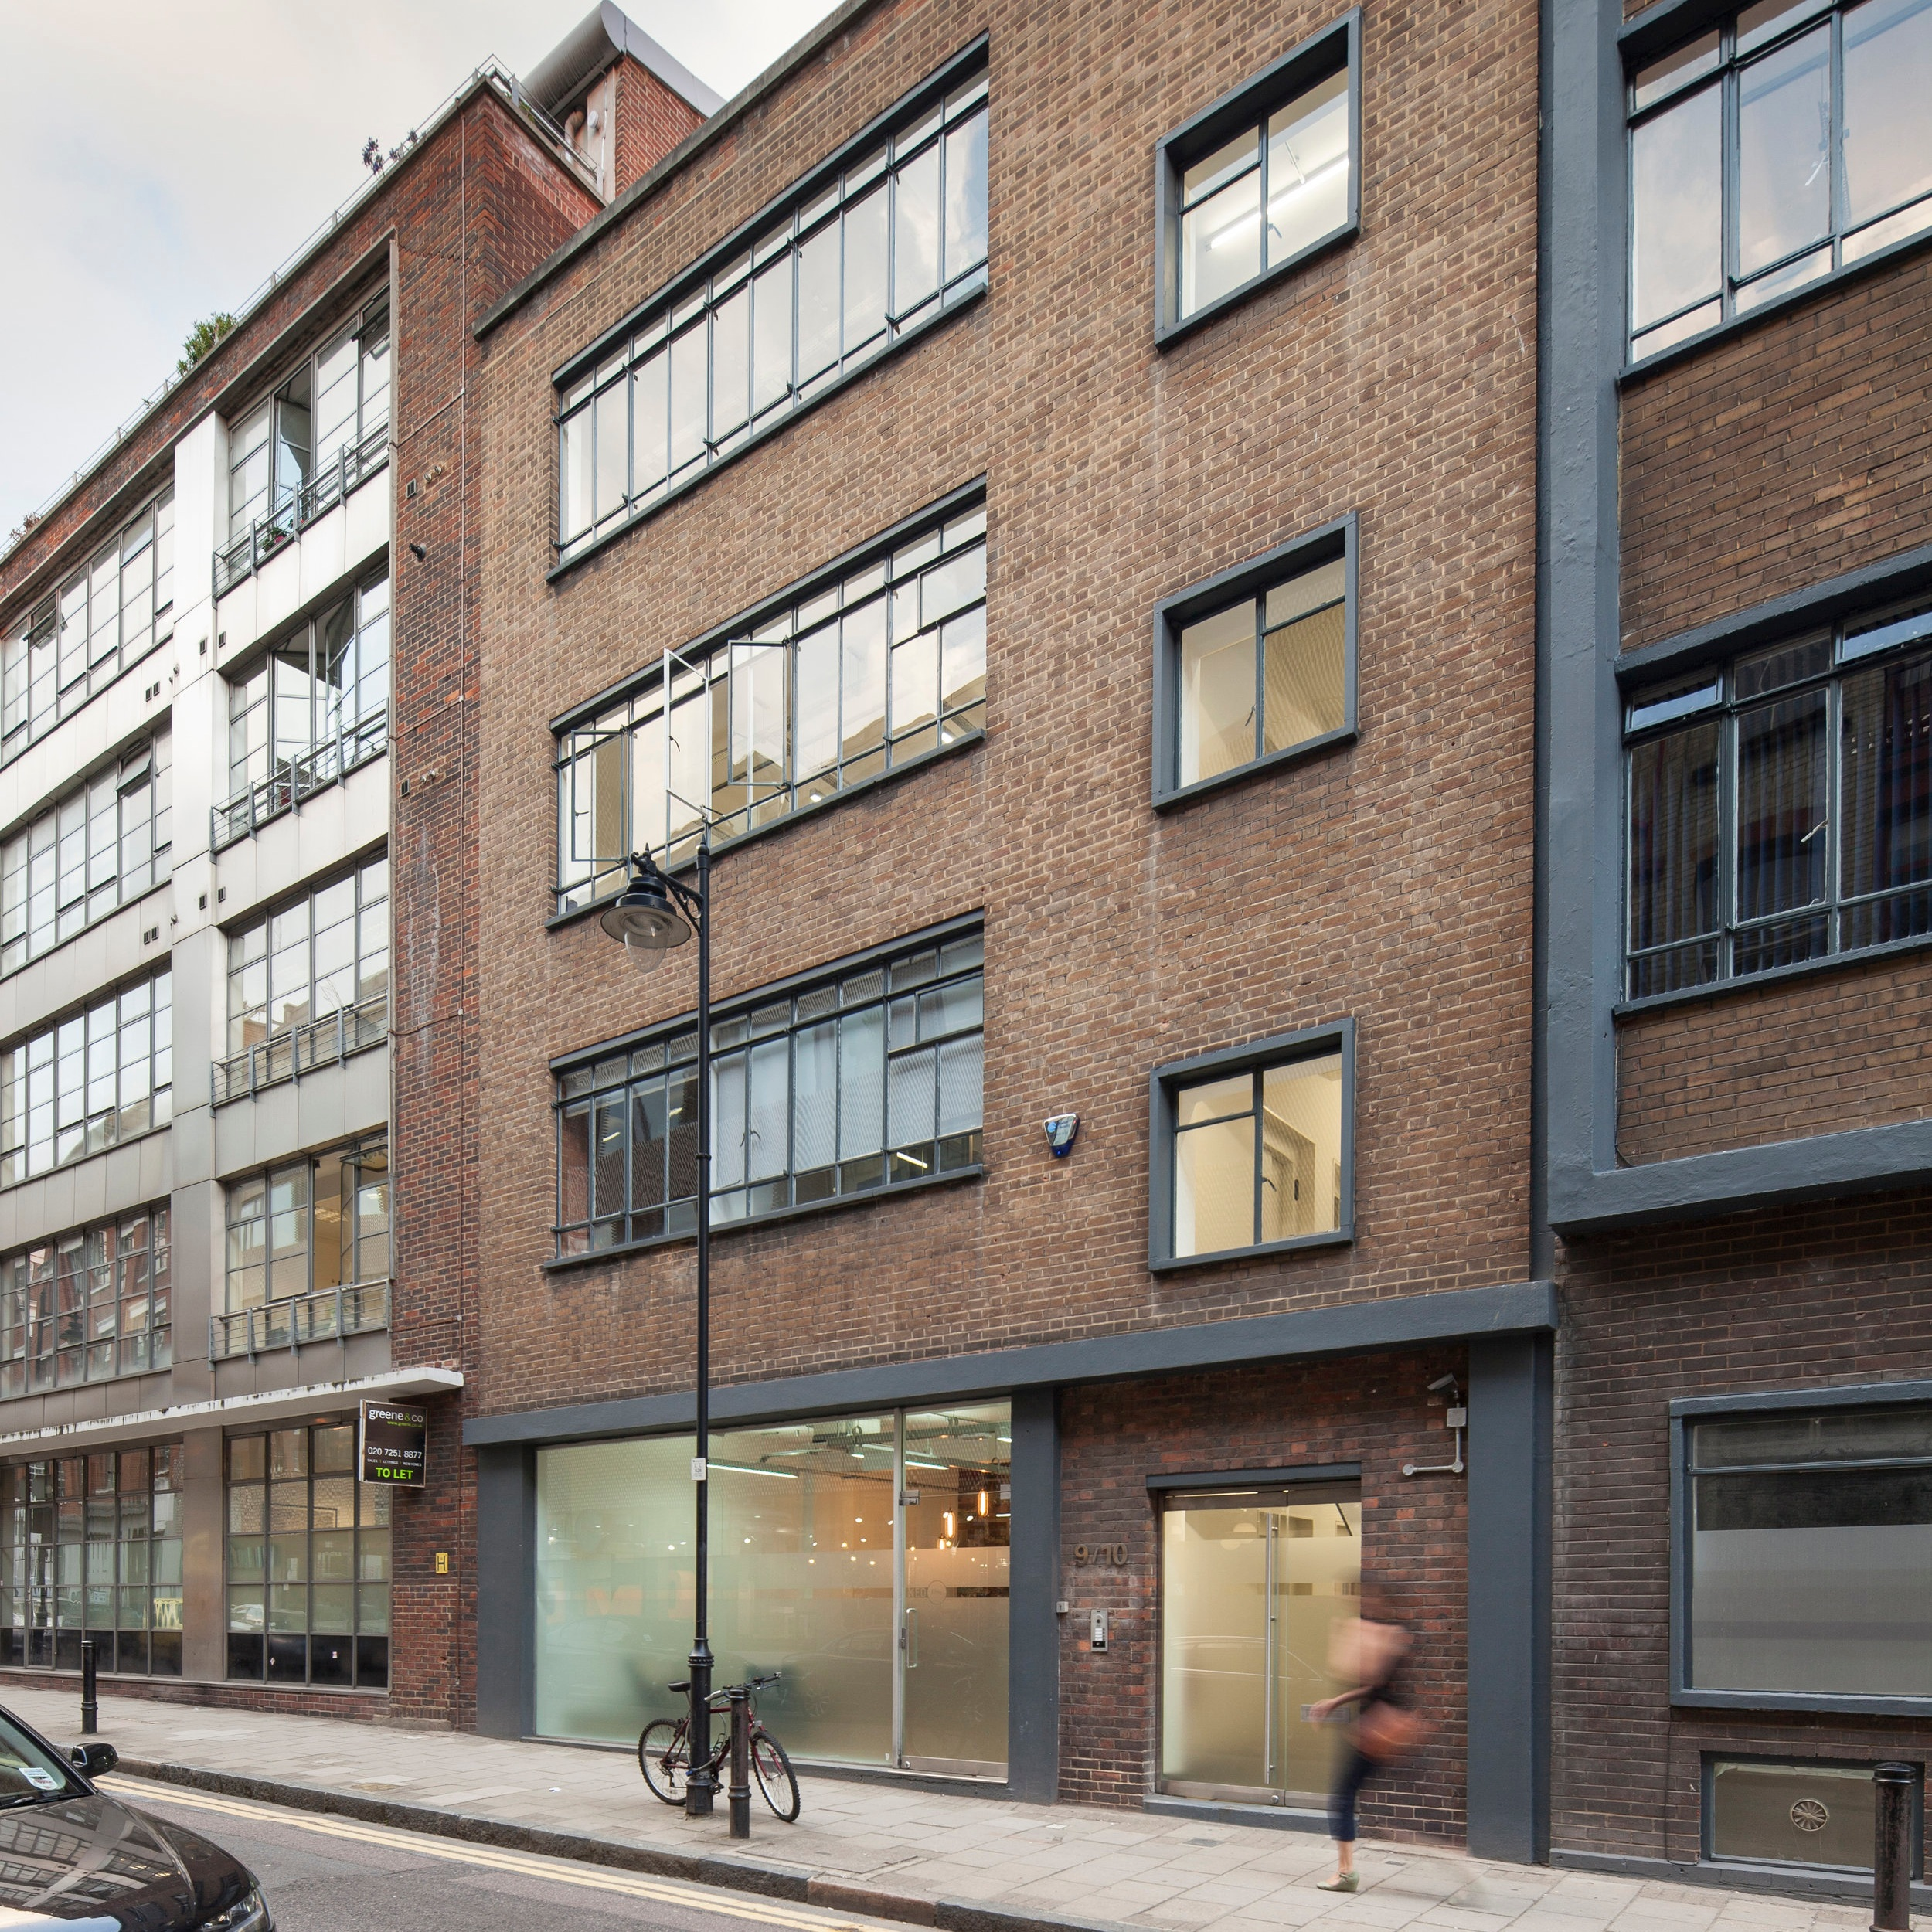 great sutton st, clerkenwell - Acquired in the summer of 2012 along with the adjacent building, this 1960's property was purchased with vacant possession and in need of refurbishment.The scheme we built delivered a contemporary office fit-out whilst retaining the building's industrial character; a pre-let of the entire building was agreed to a well-known film production company.We have recently secured consent to demolish the two buildings and develop a new, modern showroom and office building.